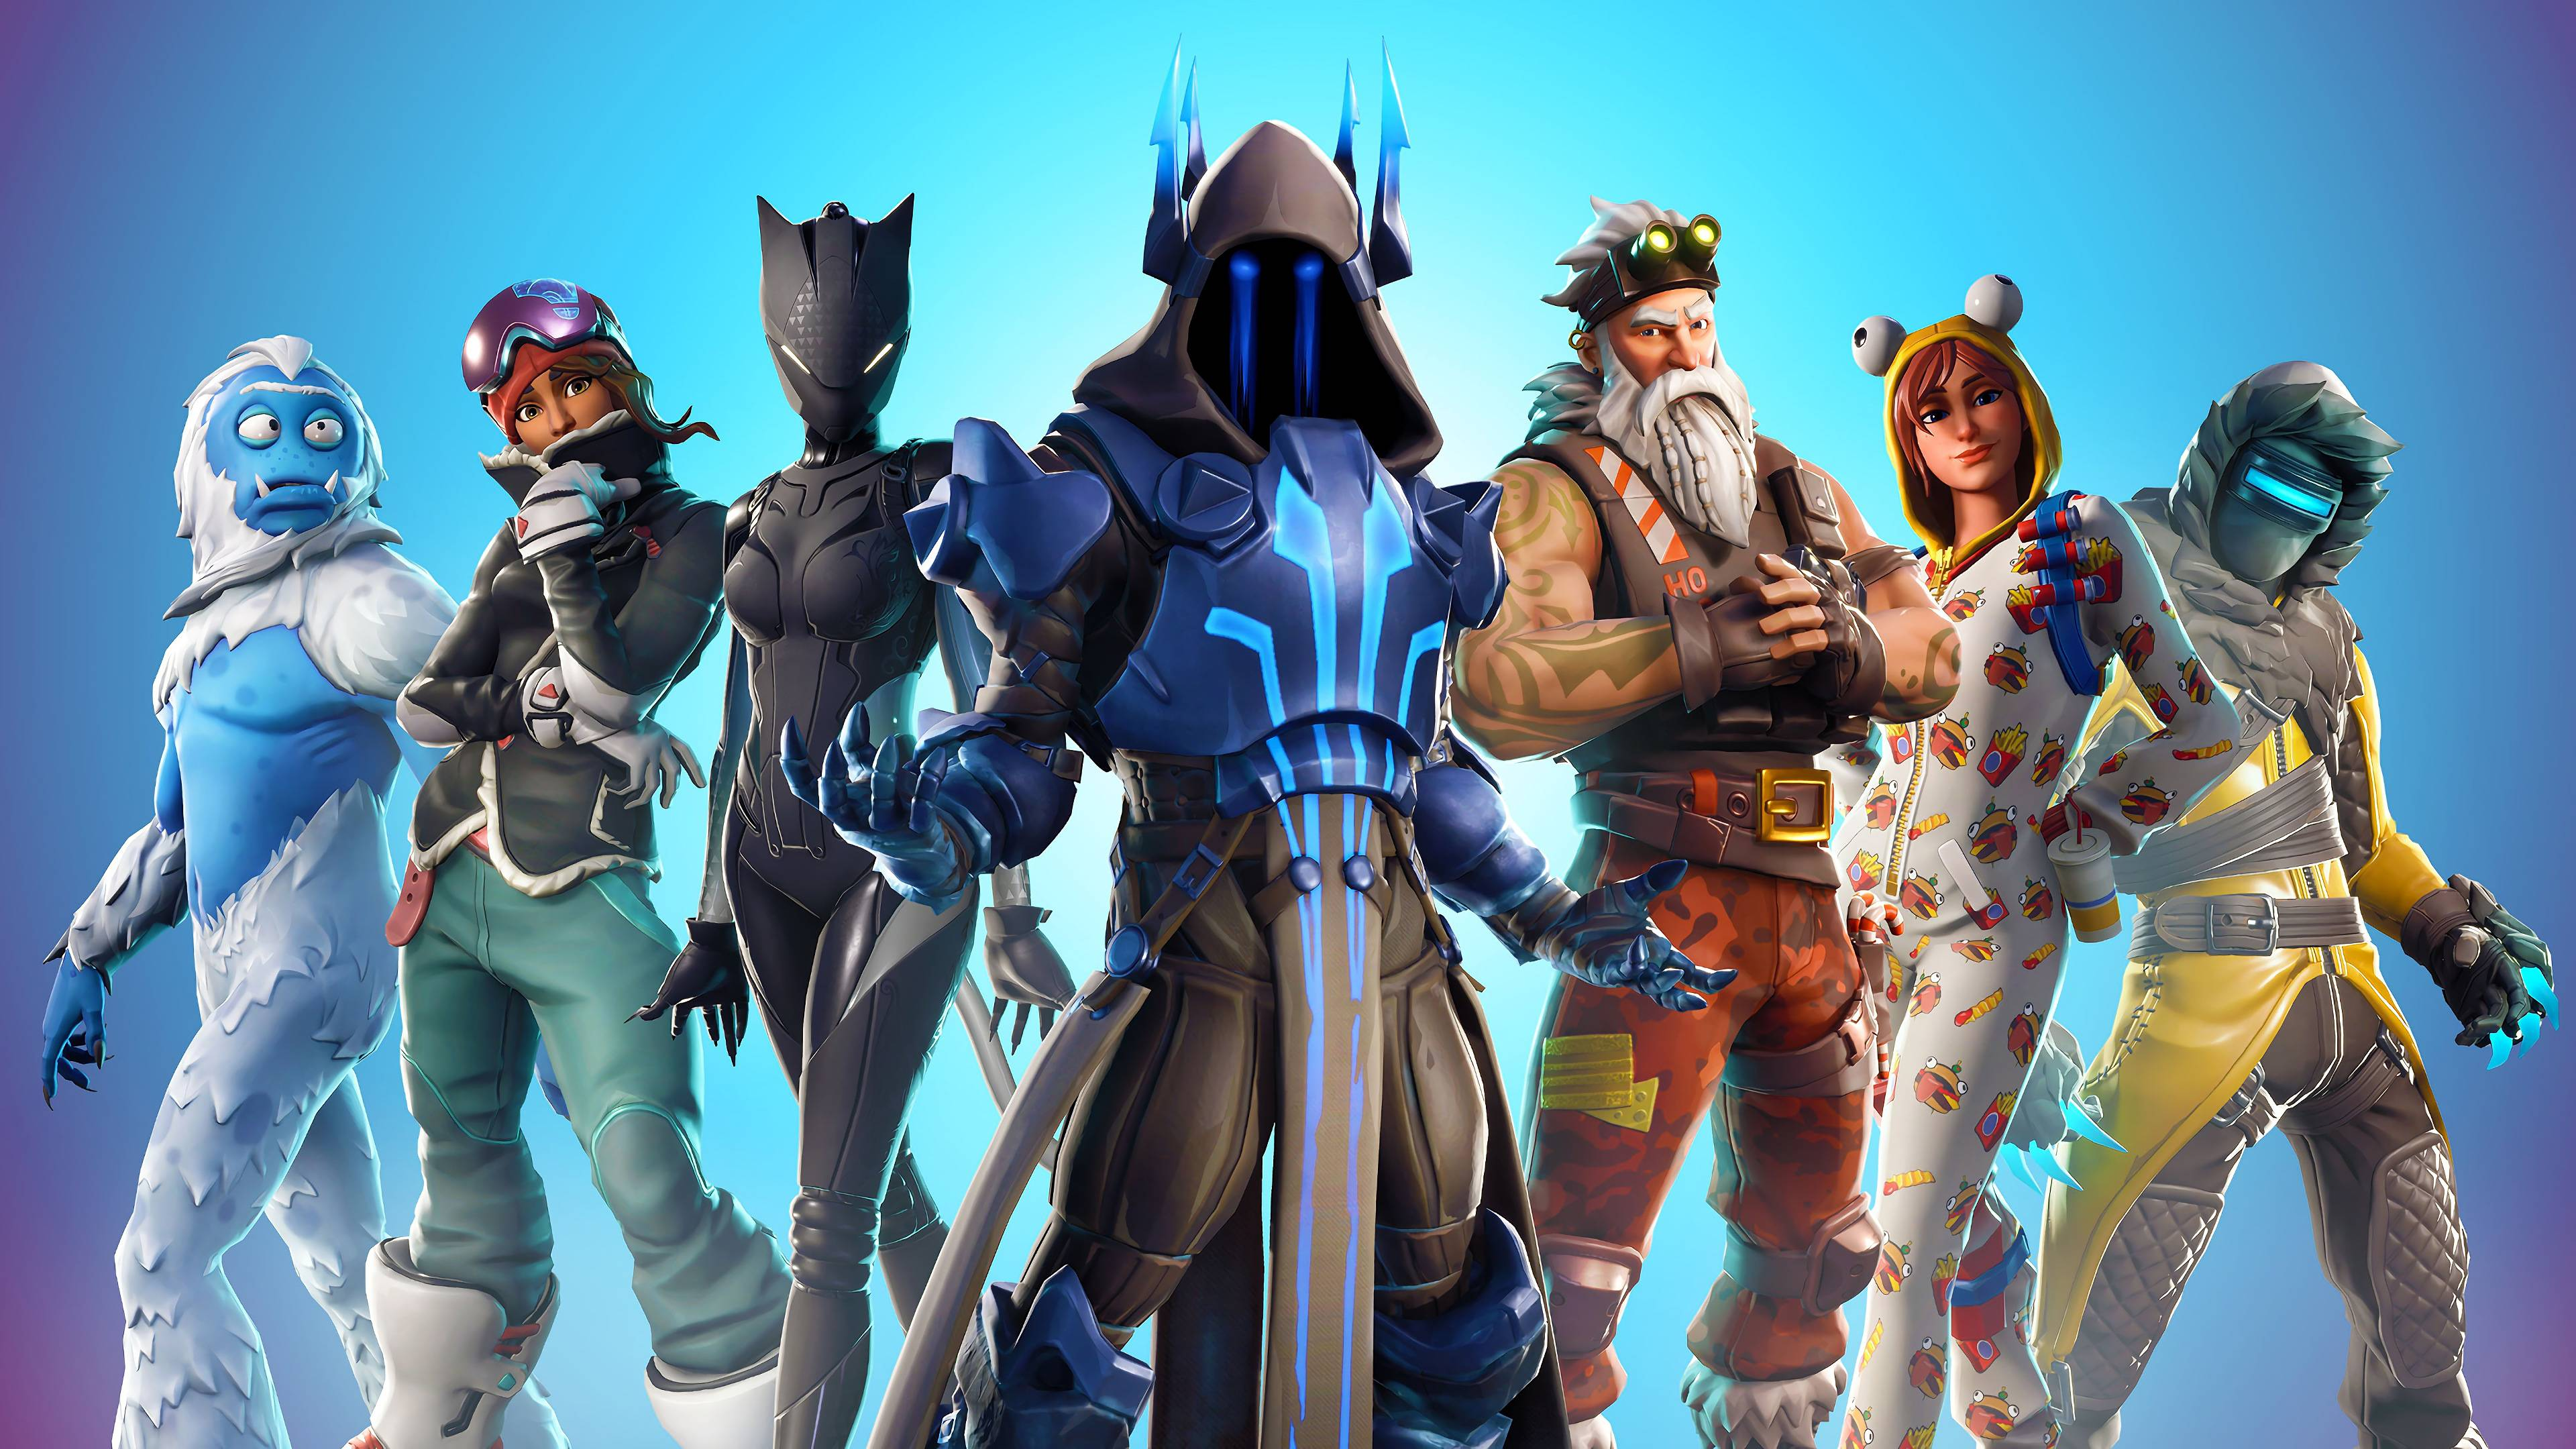 Fortnite 8k Wallpapers Top Free Fortnite 8k Backgrounds Wallpaperaccess